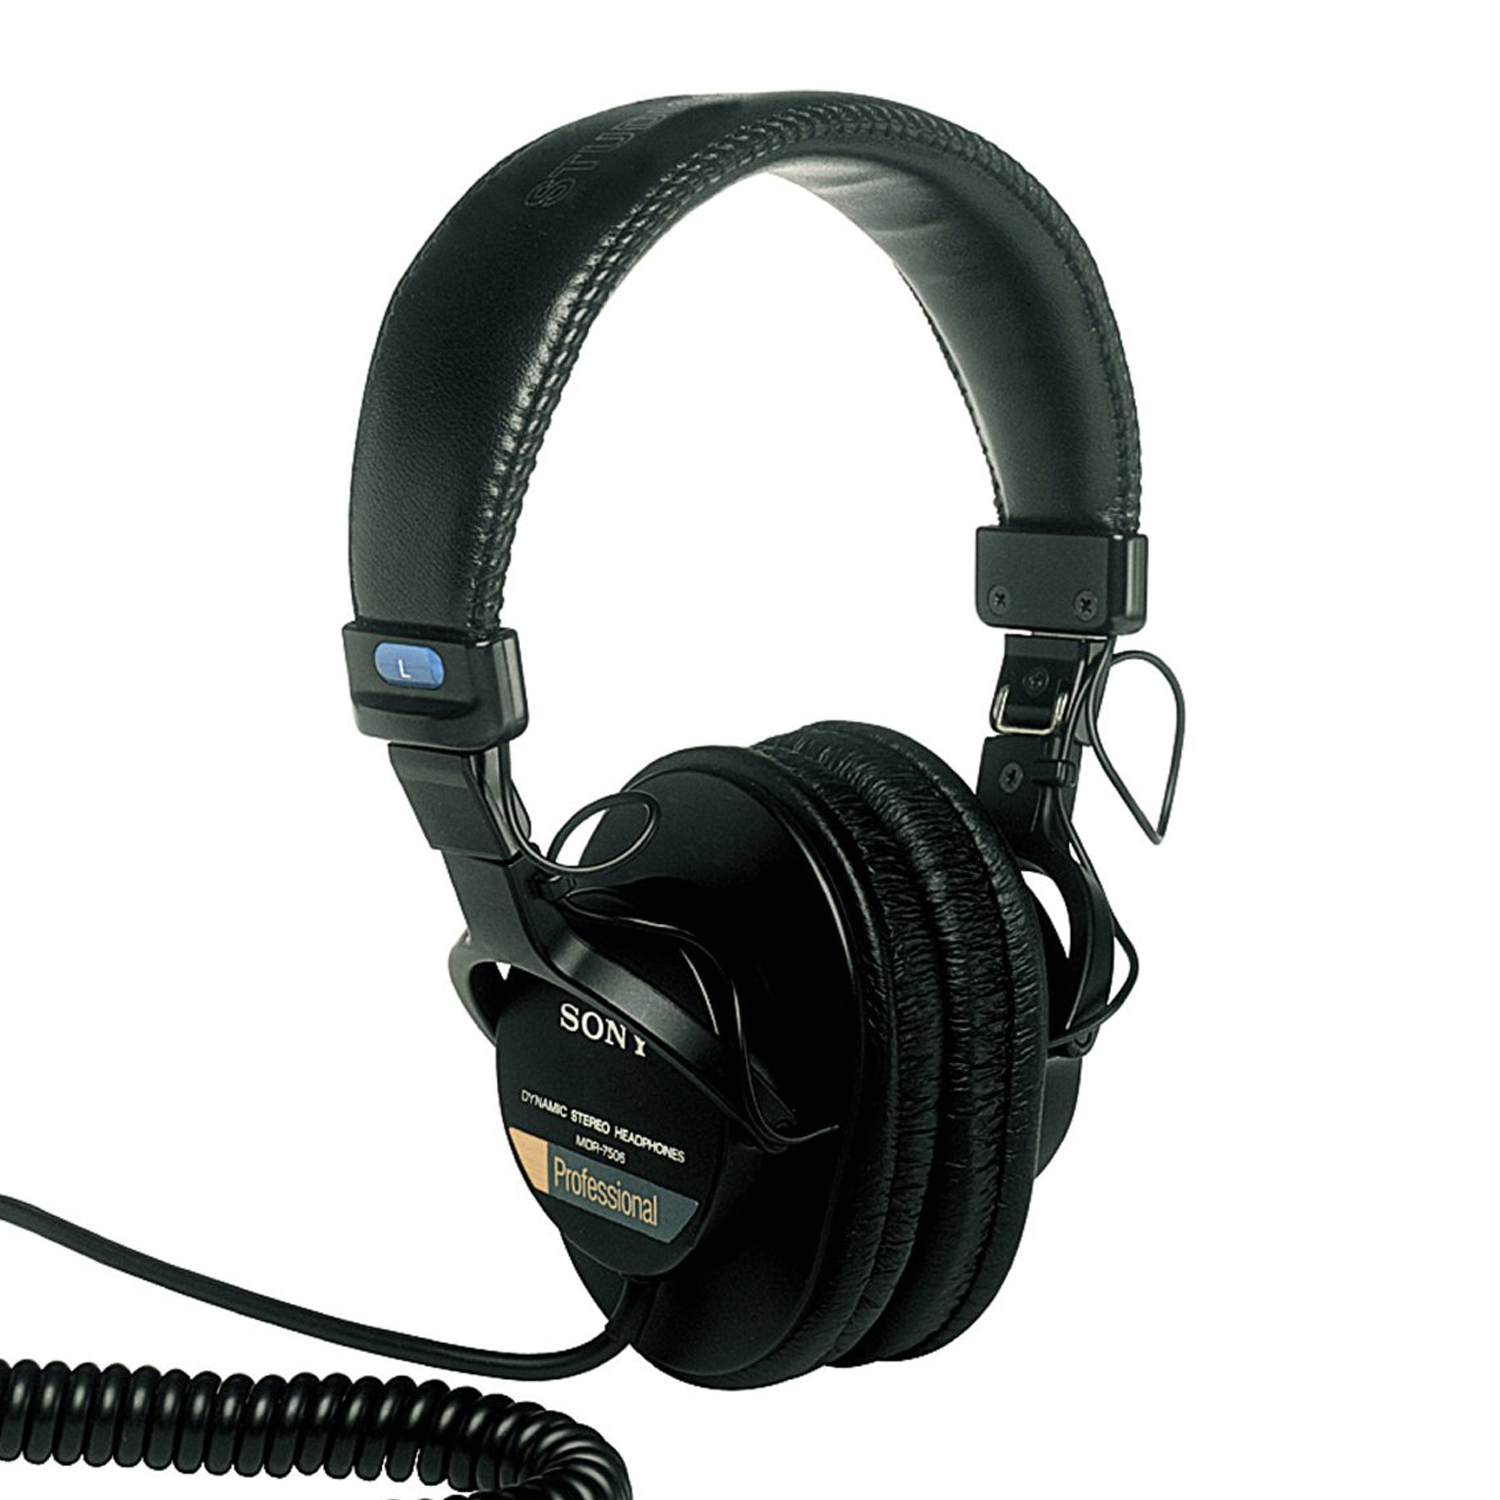 sony mdr 7510 vs sony mdr 7506 which headphones stand out. Black Bedroom Furniture Sets. Home Design Ideas